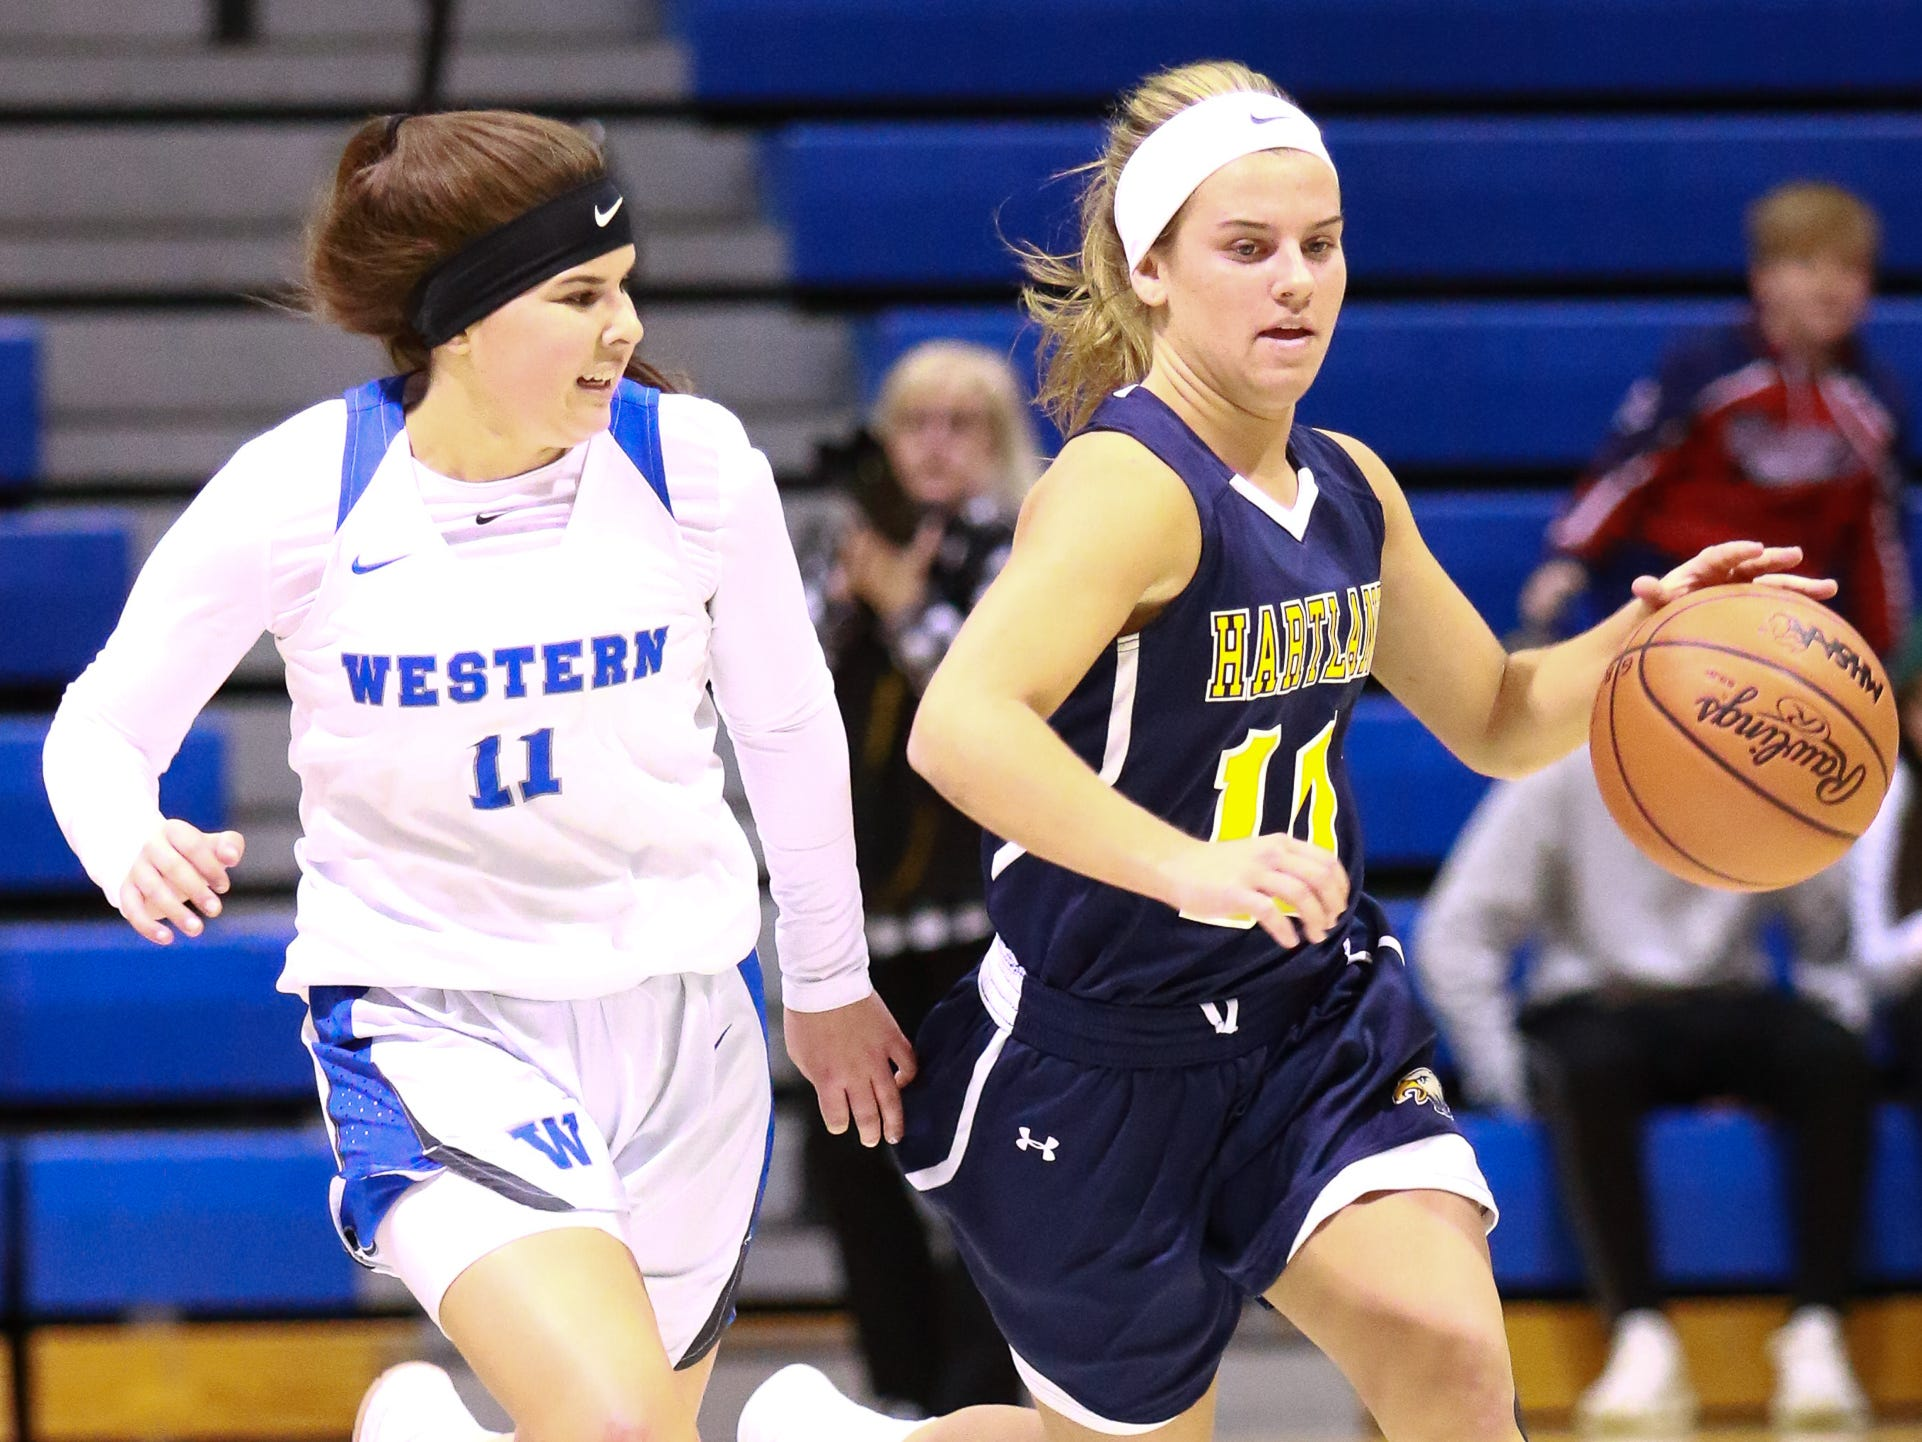 Hartland's Nikki Dompierre (right) scored a career-high 26 points in a 50-46 victory over Walled Lake Western in the Division 1 regional championship game at Lakeland on Wednesday, March 13, 2019.